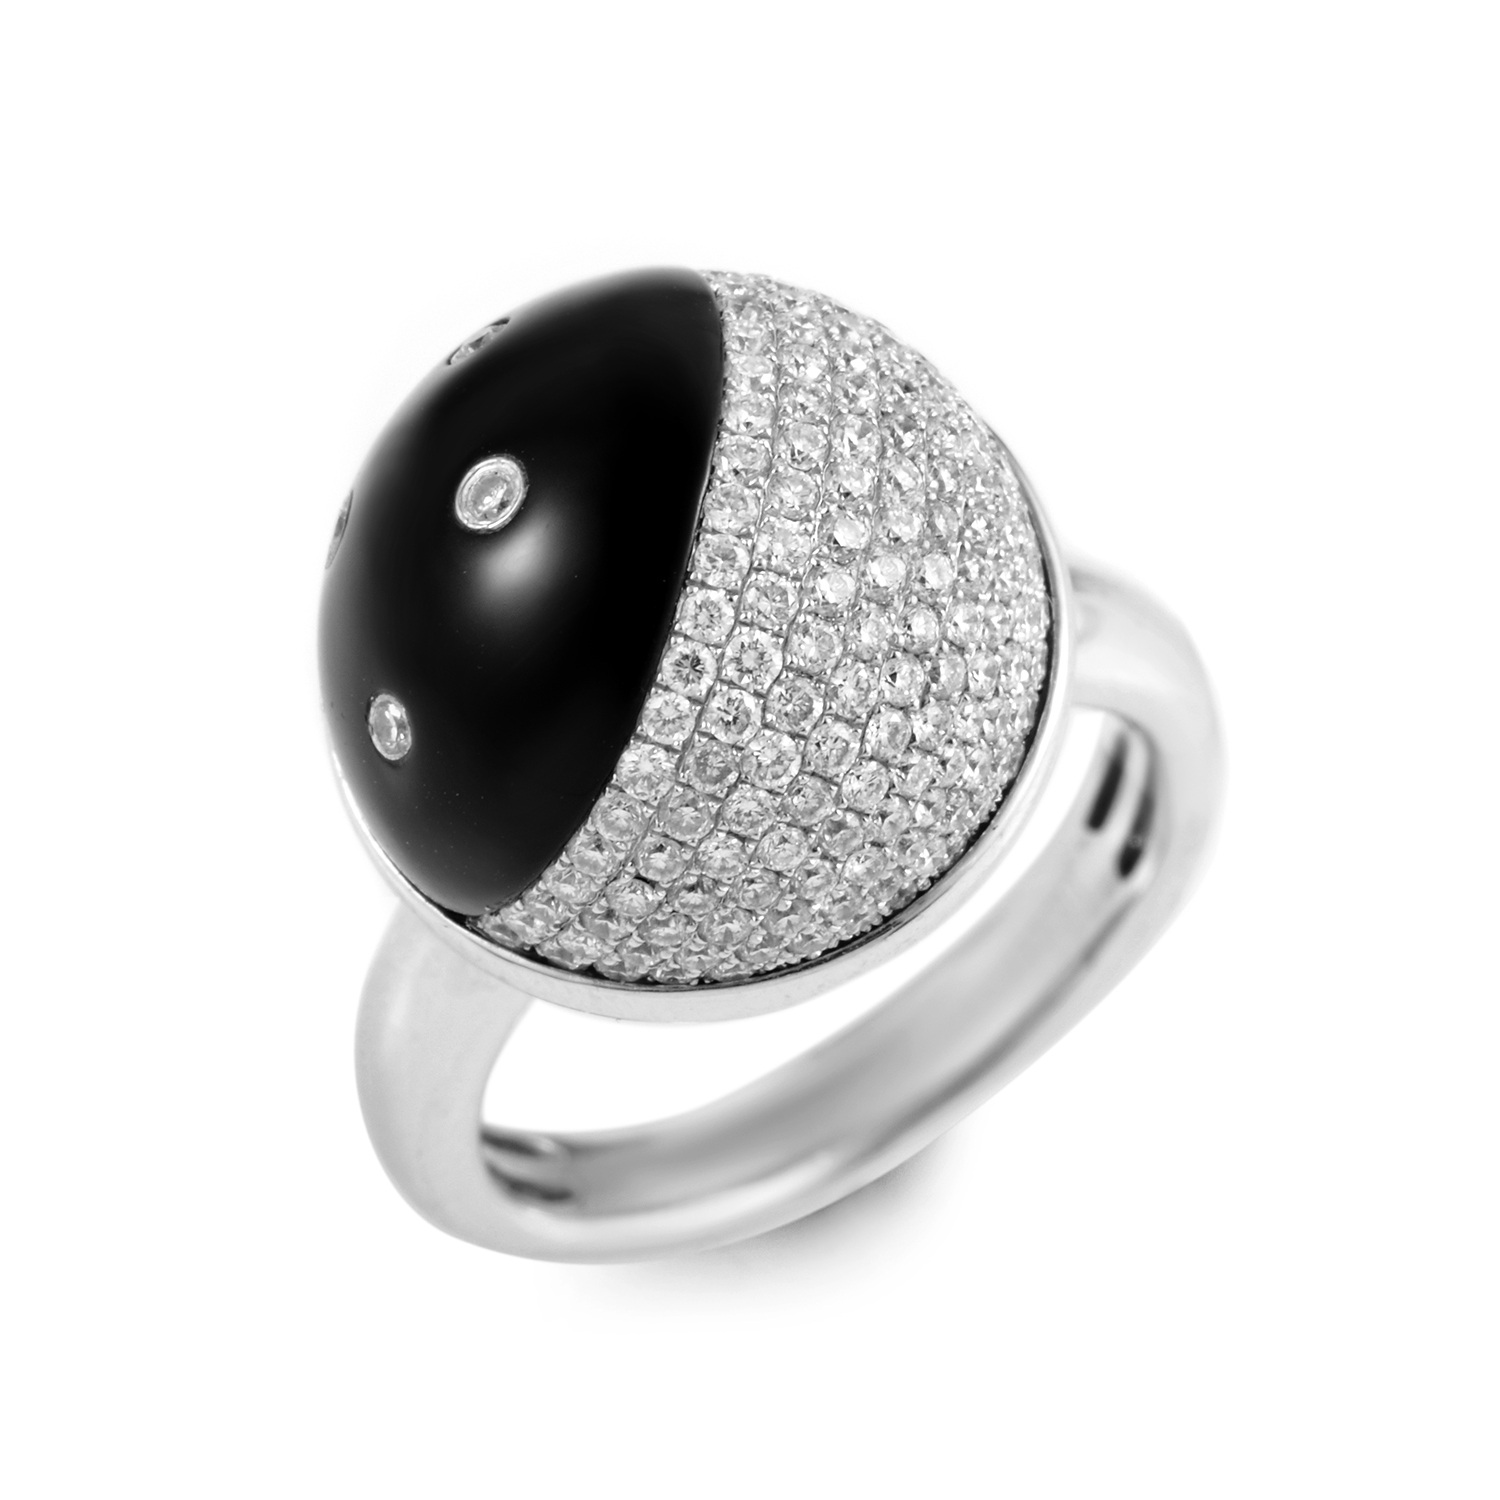 18K White Gold Onyx & Diamond Ring R-14-021016